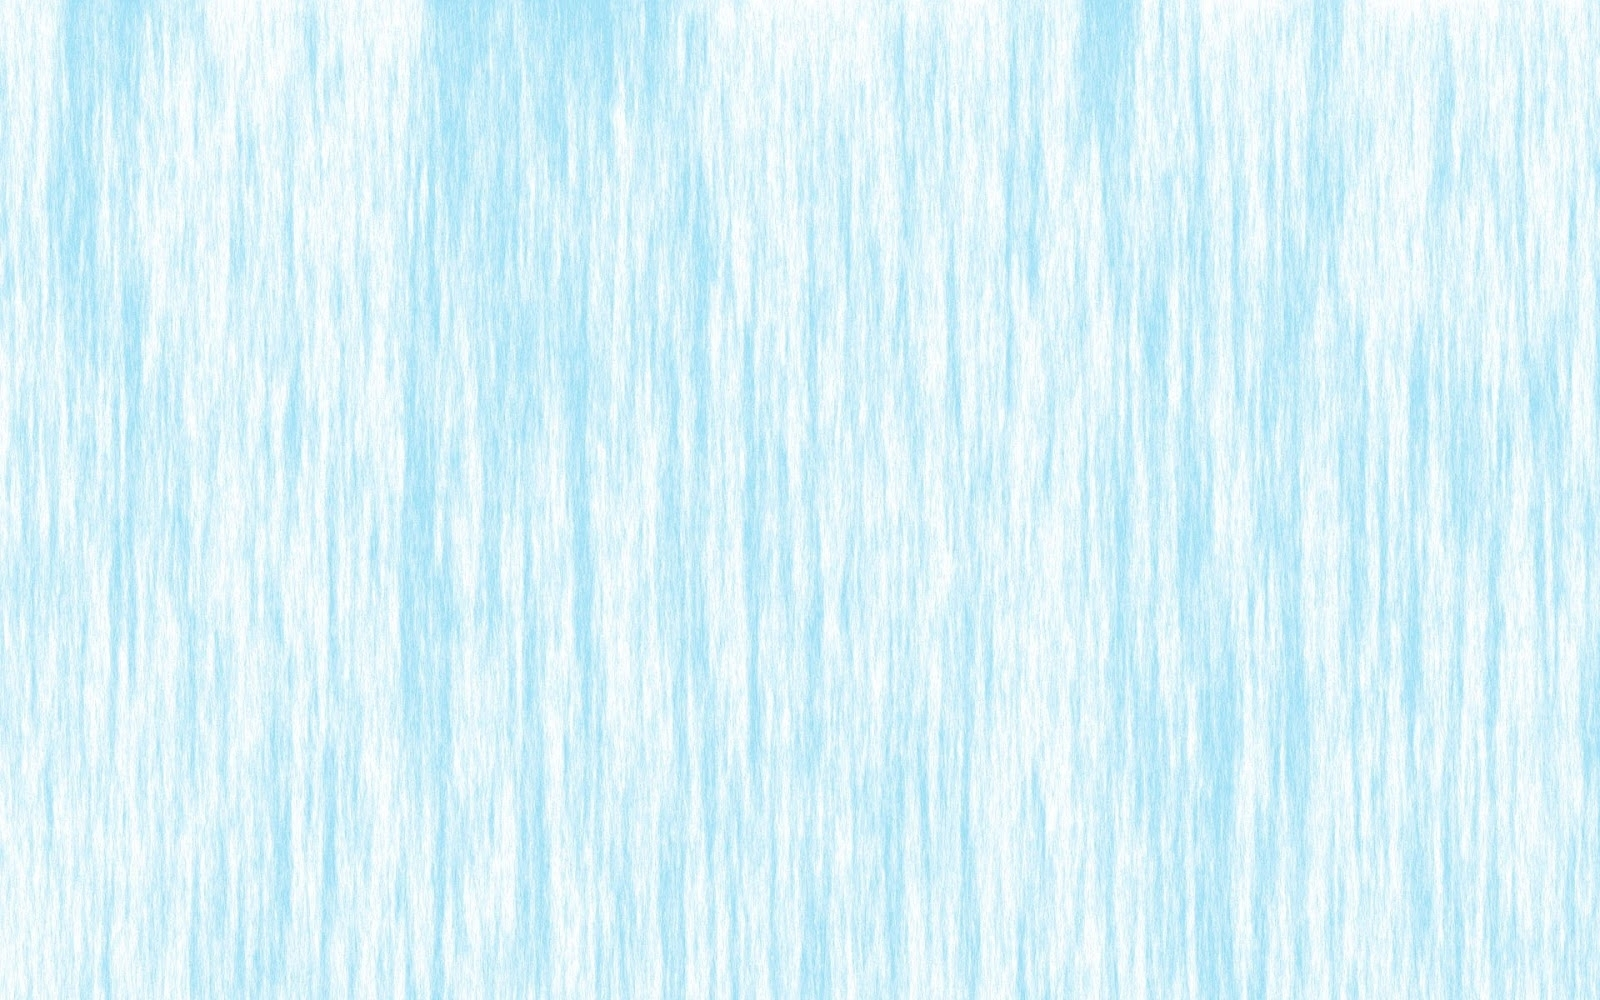 10 Latest Baby Blue Background Tumblr FULL HD 1080p For PC Background